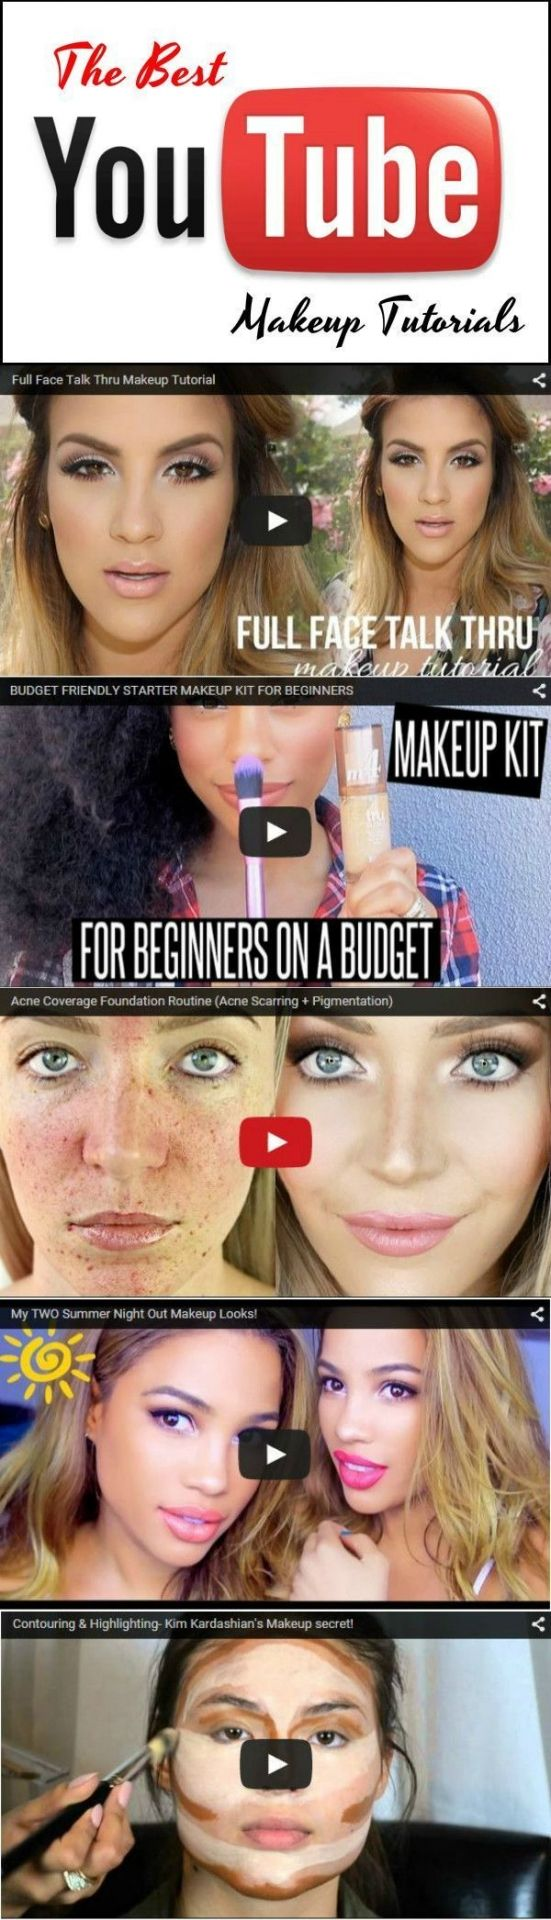 Top 10 YouTube Makeup Tutorials You Need To Watch Makeup Artist Tricks For A Flawless Look at makeuptutorials.c… The post Top 10 YouTube Makeup Tutorials ...